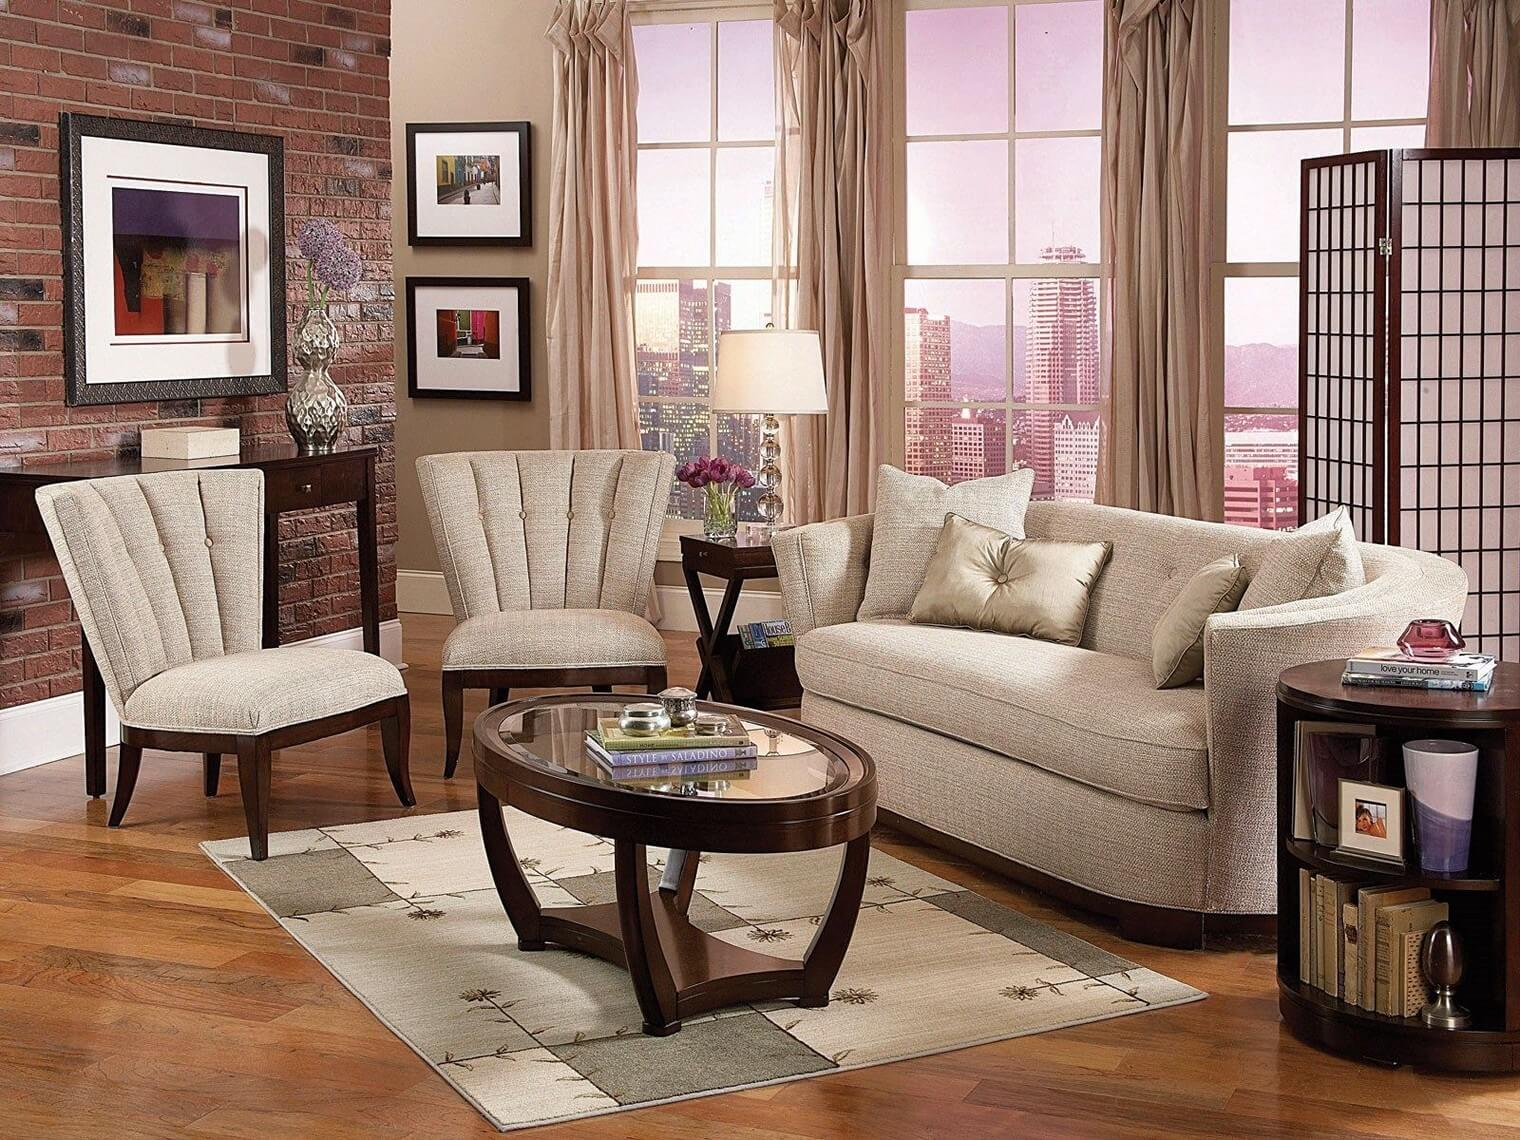 124 great living room ideas and designs photo gallery for Living room stools furniture